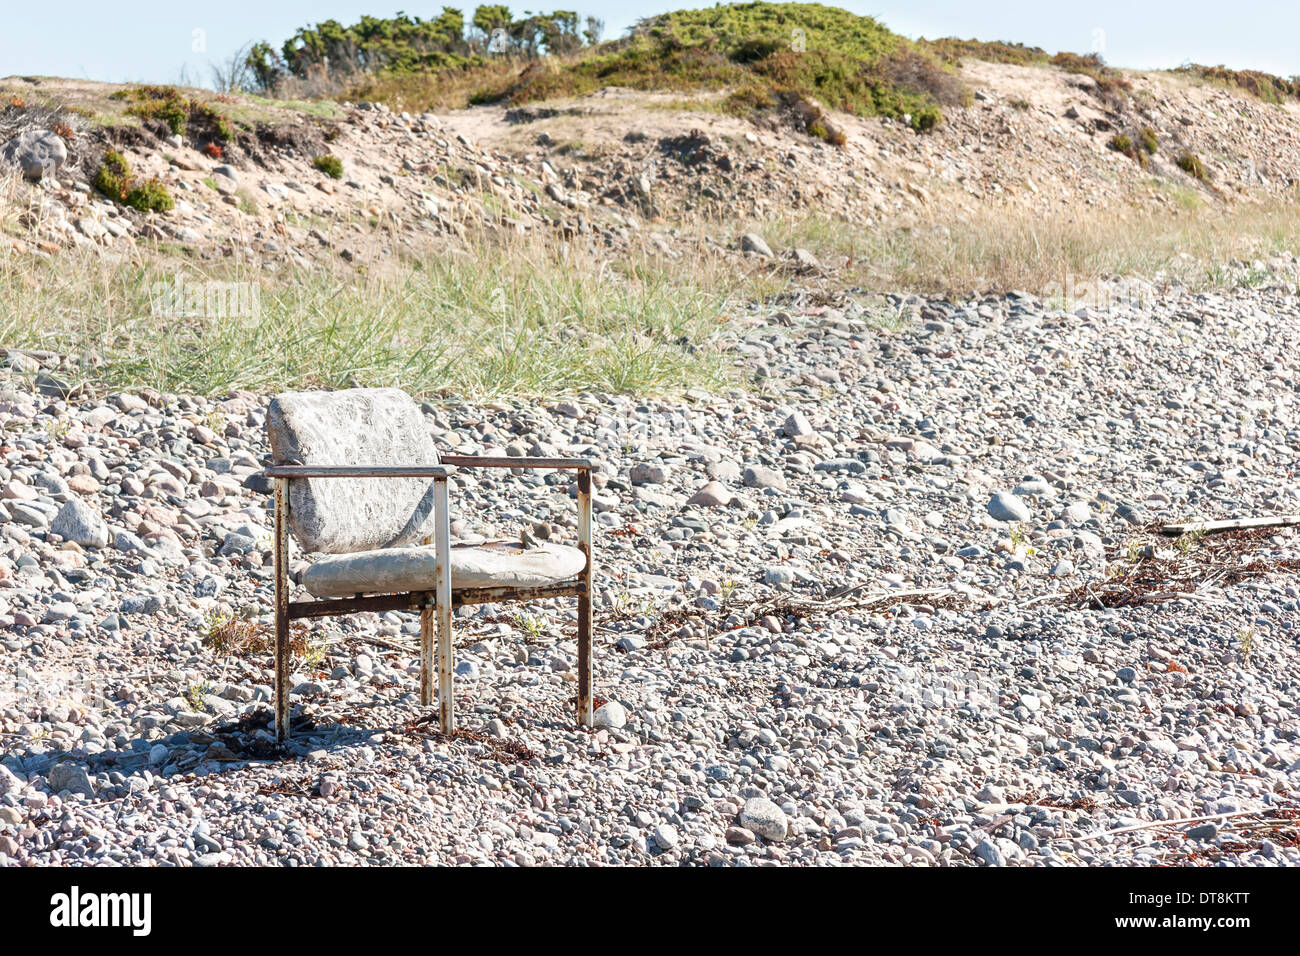 Old worn out chair outside on a land covered with small stones - Stock Image